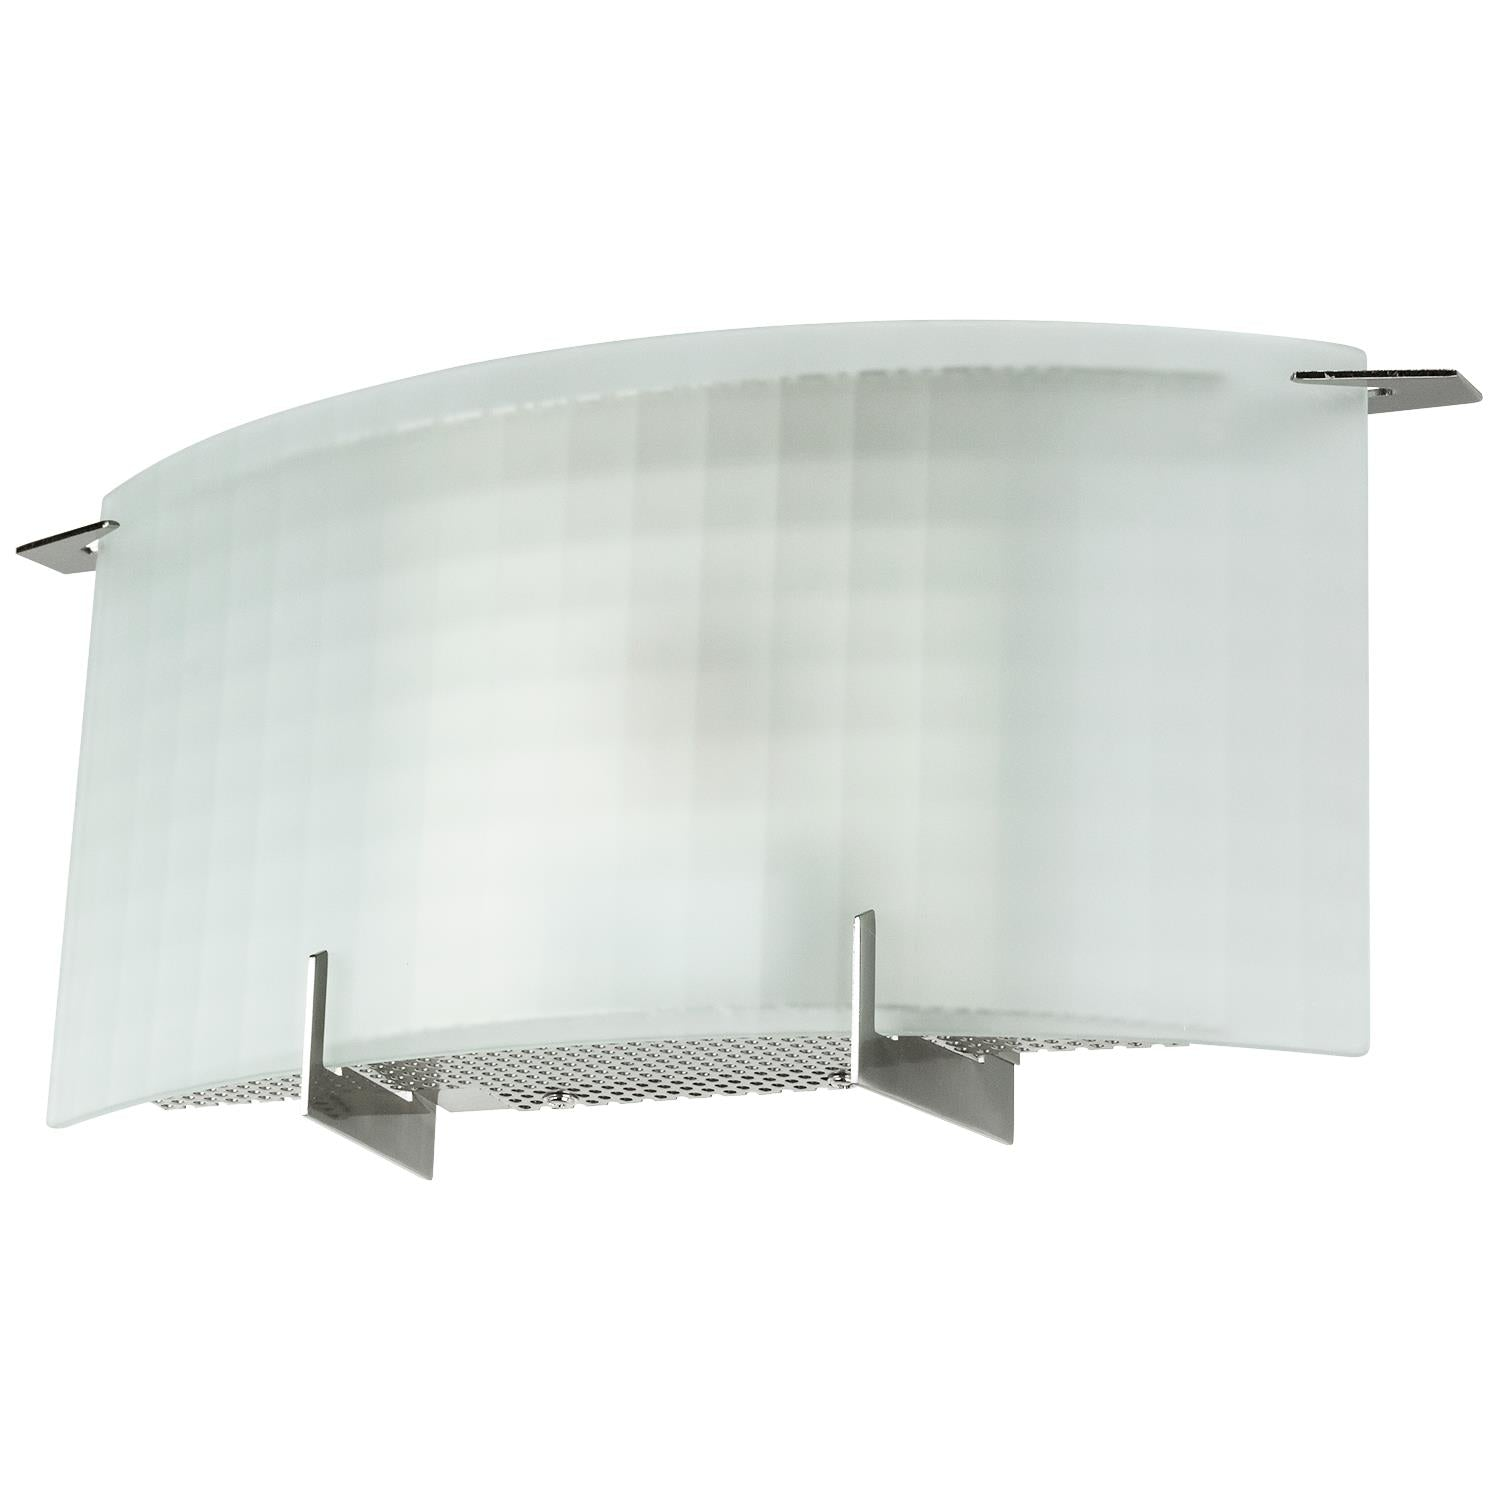 SUNLITE 14in 9w Wall Sconce in Brushed Nickel Finish - 3000K